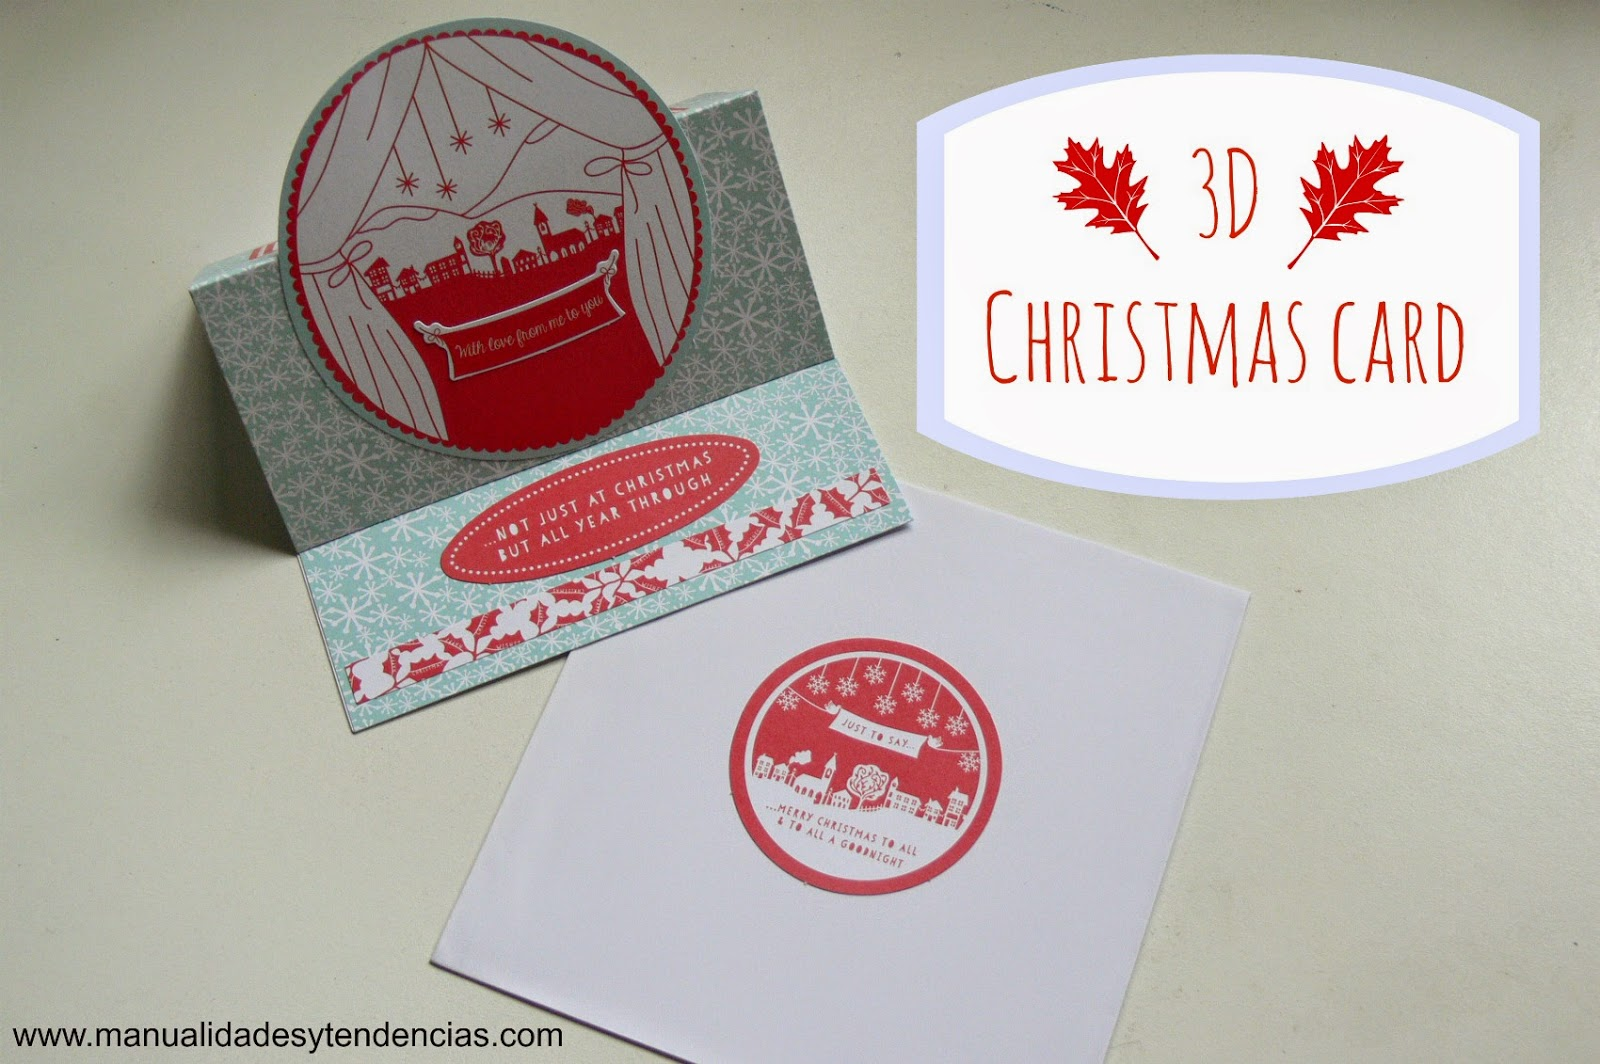 Handmade 3D Christmas card